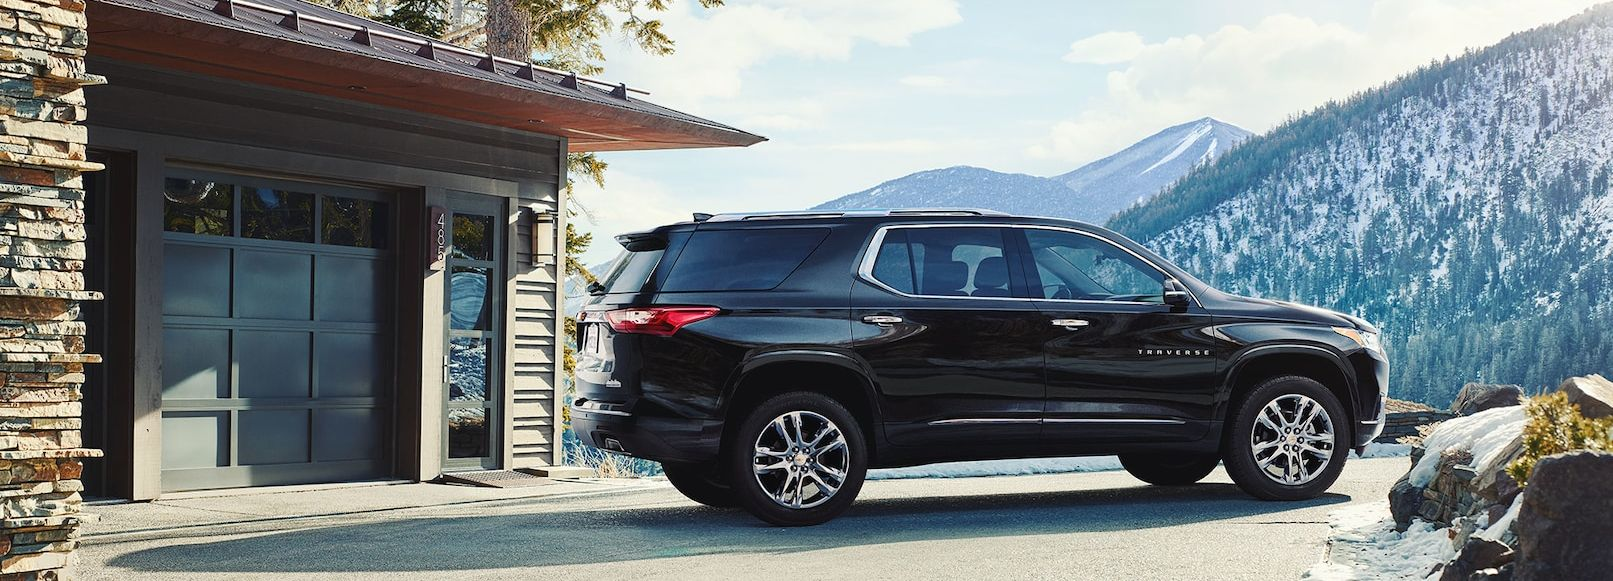 2019 Chevrolet Traverse Financing near Calumet City, IL